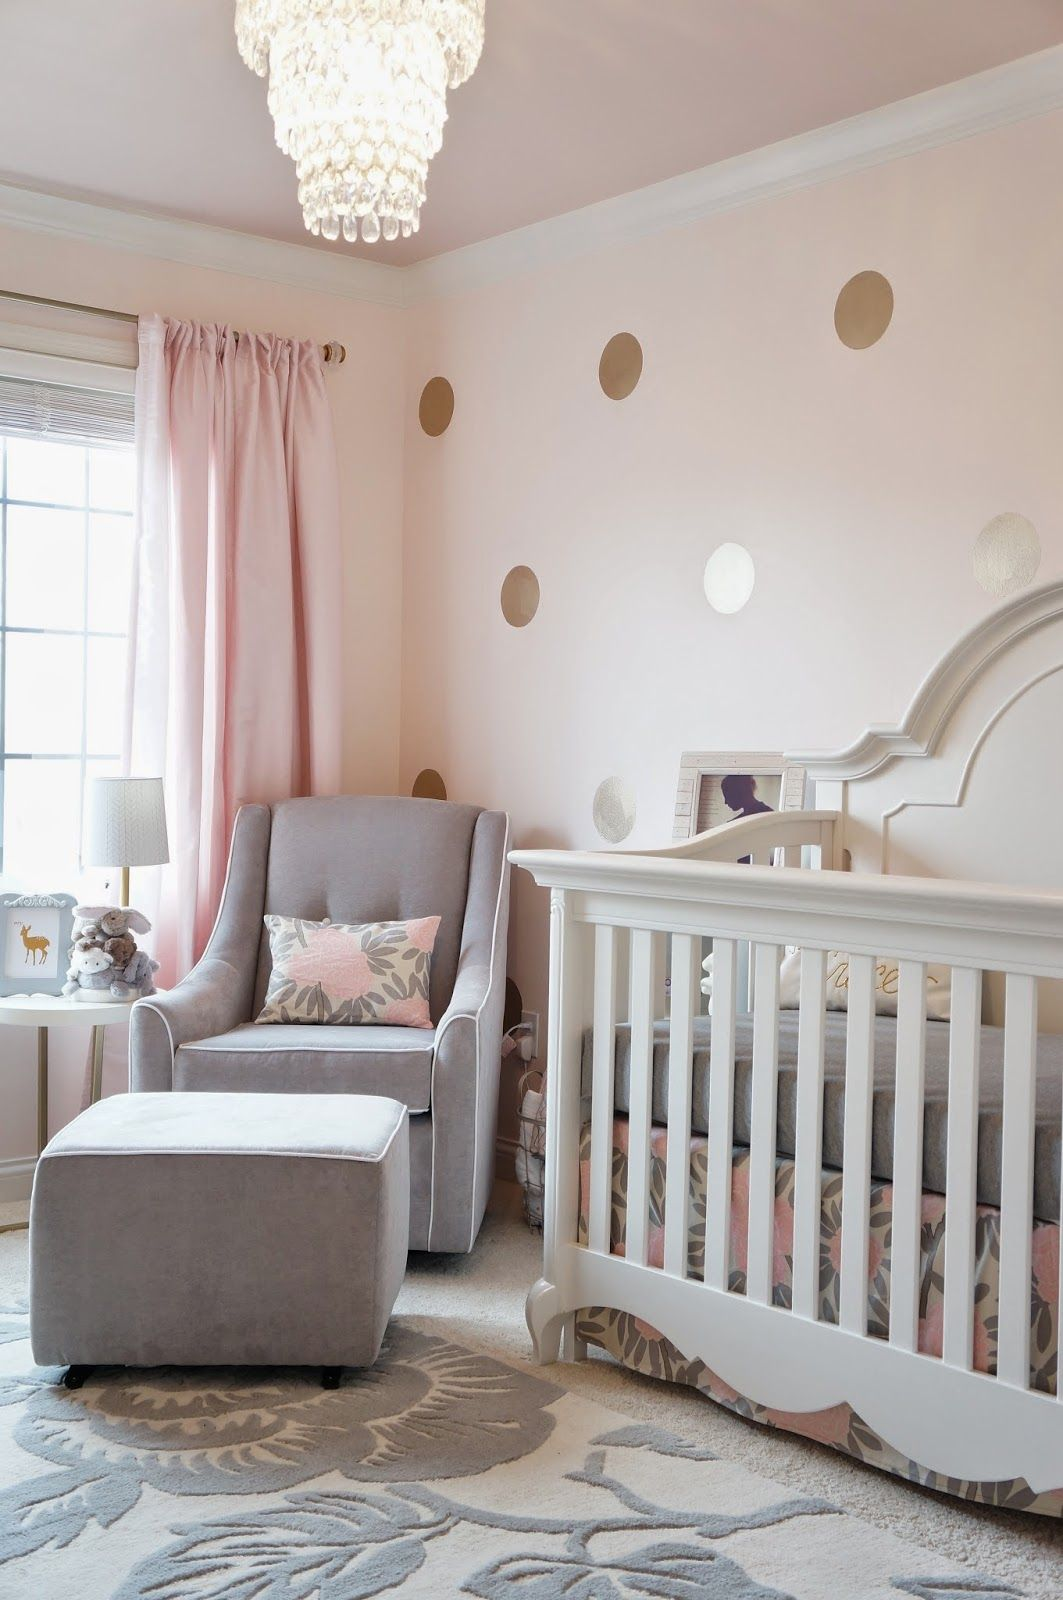 39 id es inspirations pour la d coration de la chambre b b photos pink grey house for Idee deco chambre bebe fille forum